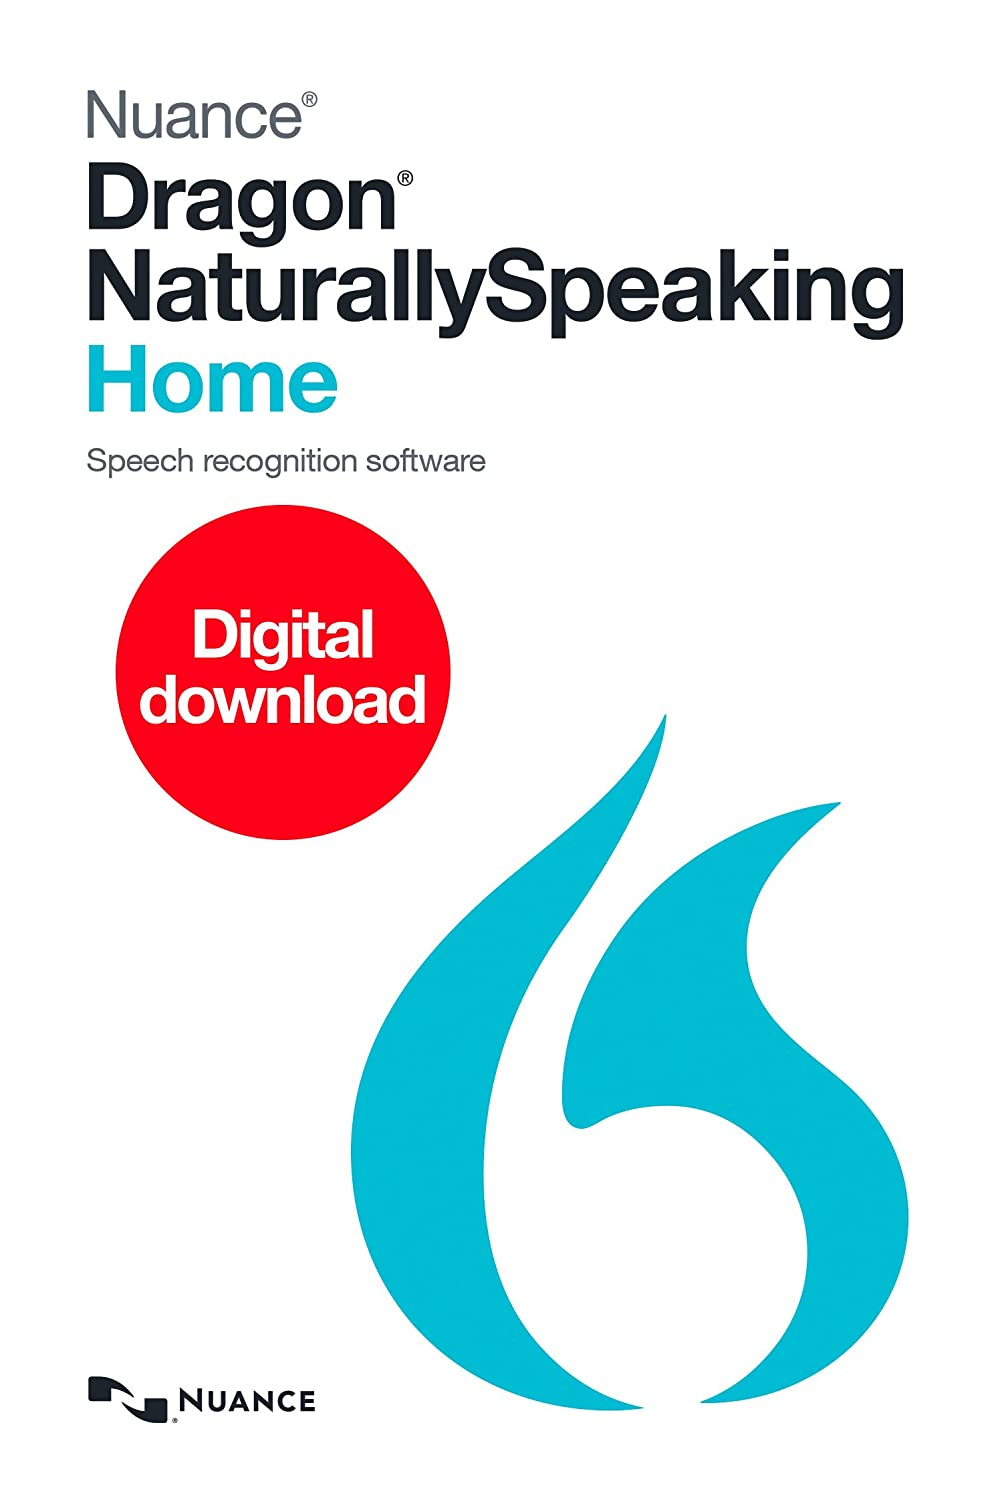 Download dragon naturally speaking. So very simple & easy.